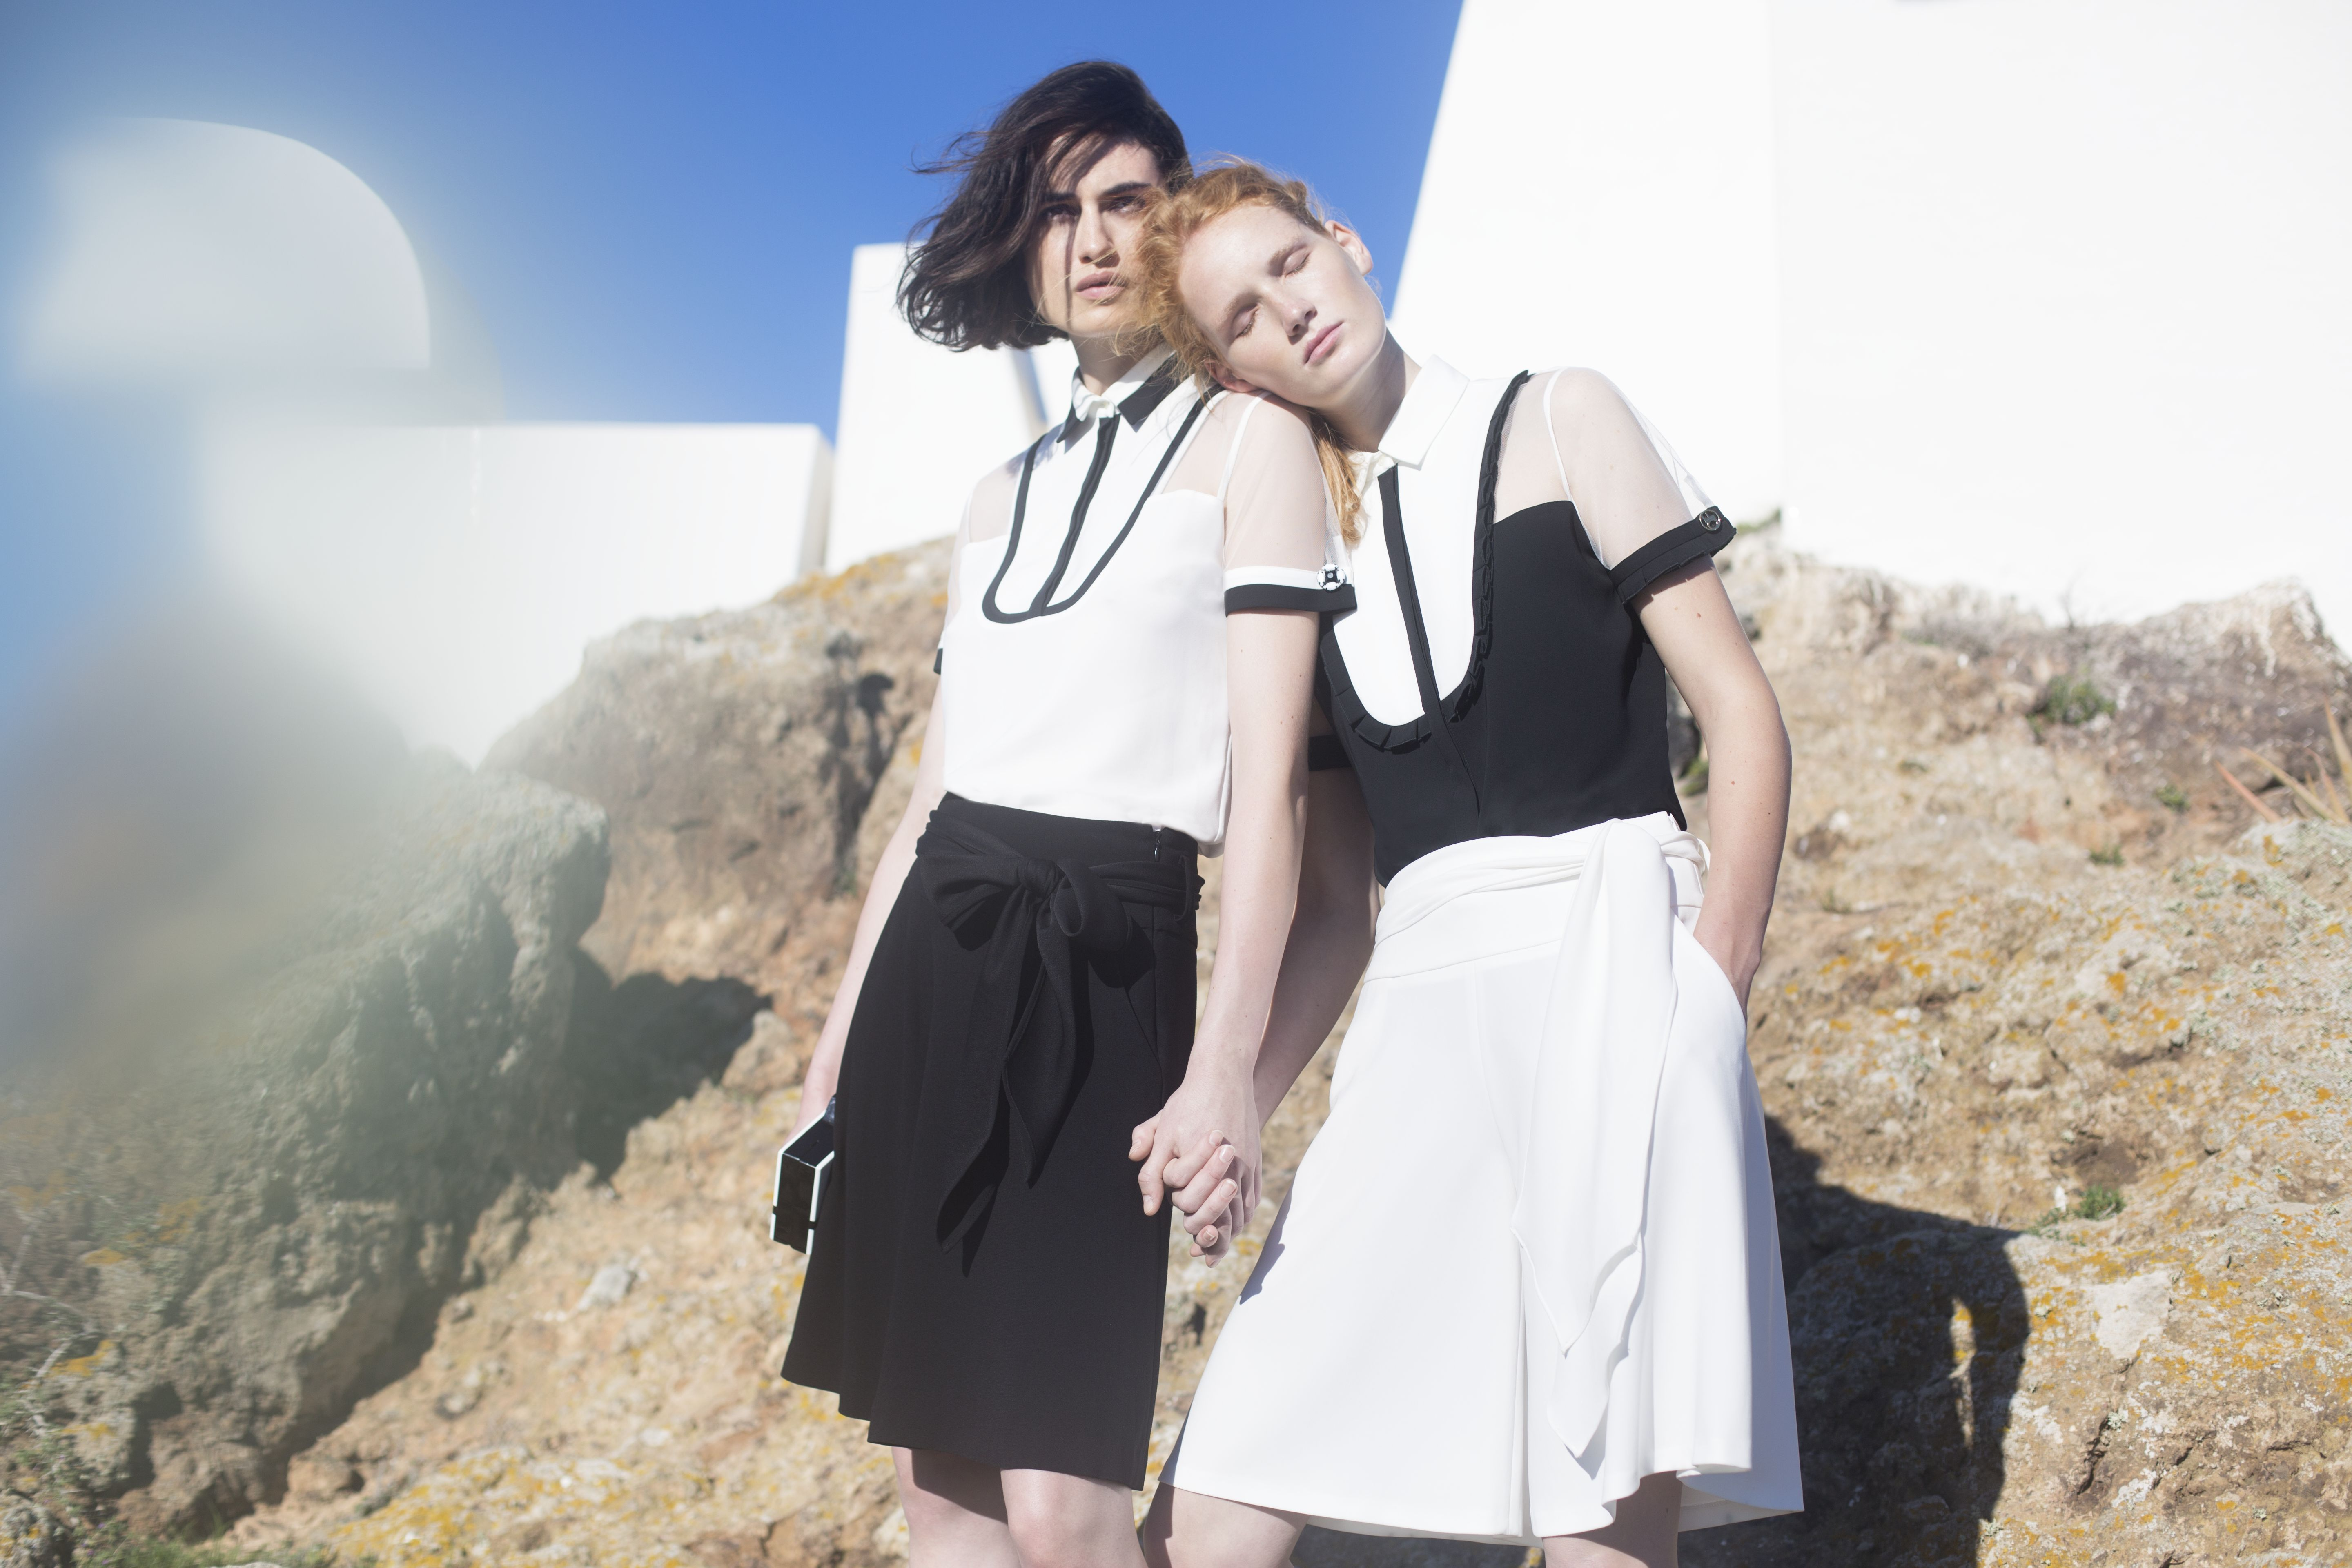 Designer Anne Fontaine's Spring Summer 2016 collection features crisp black and white looks